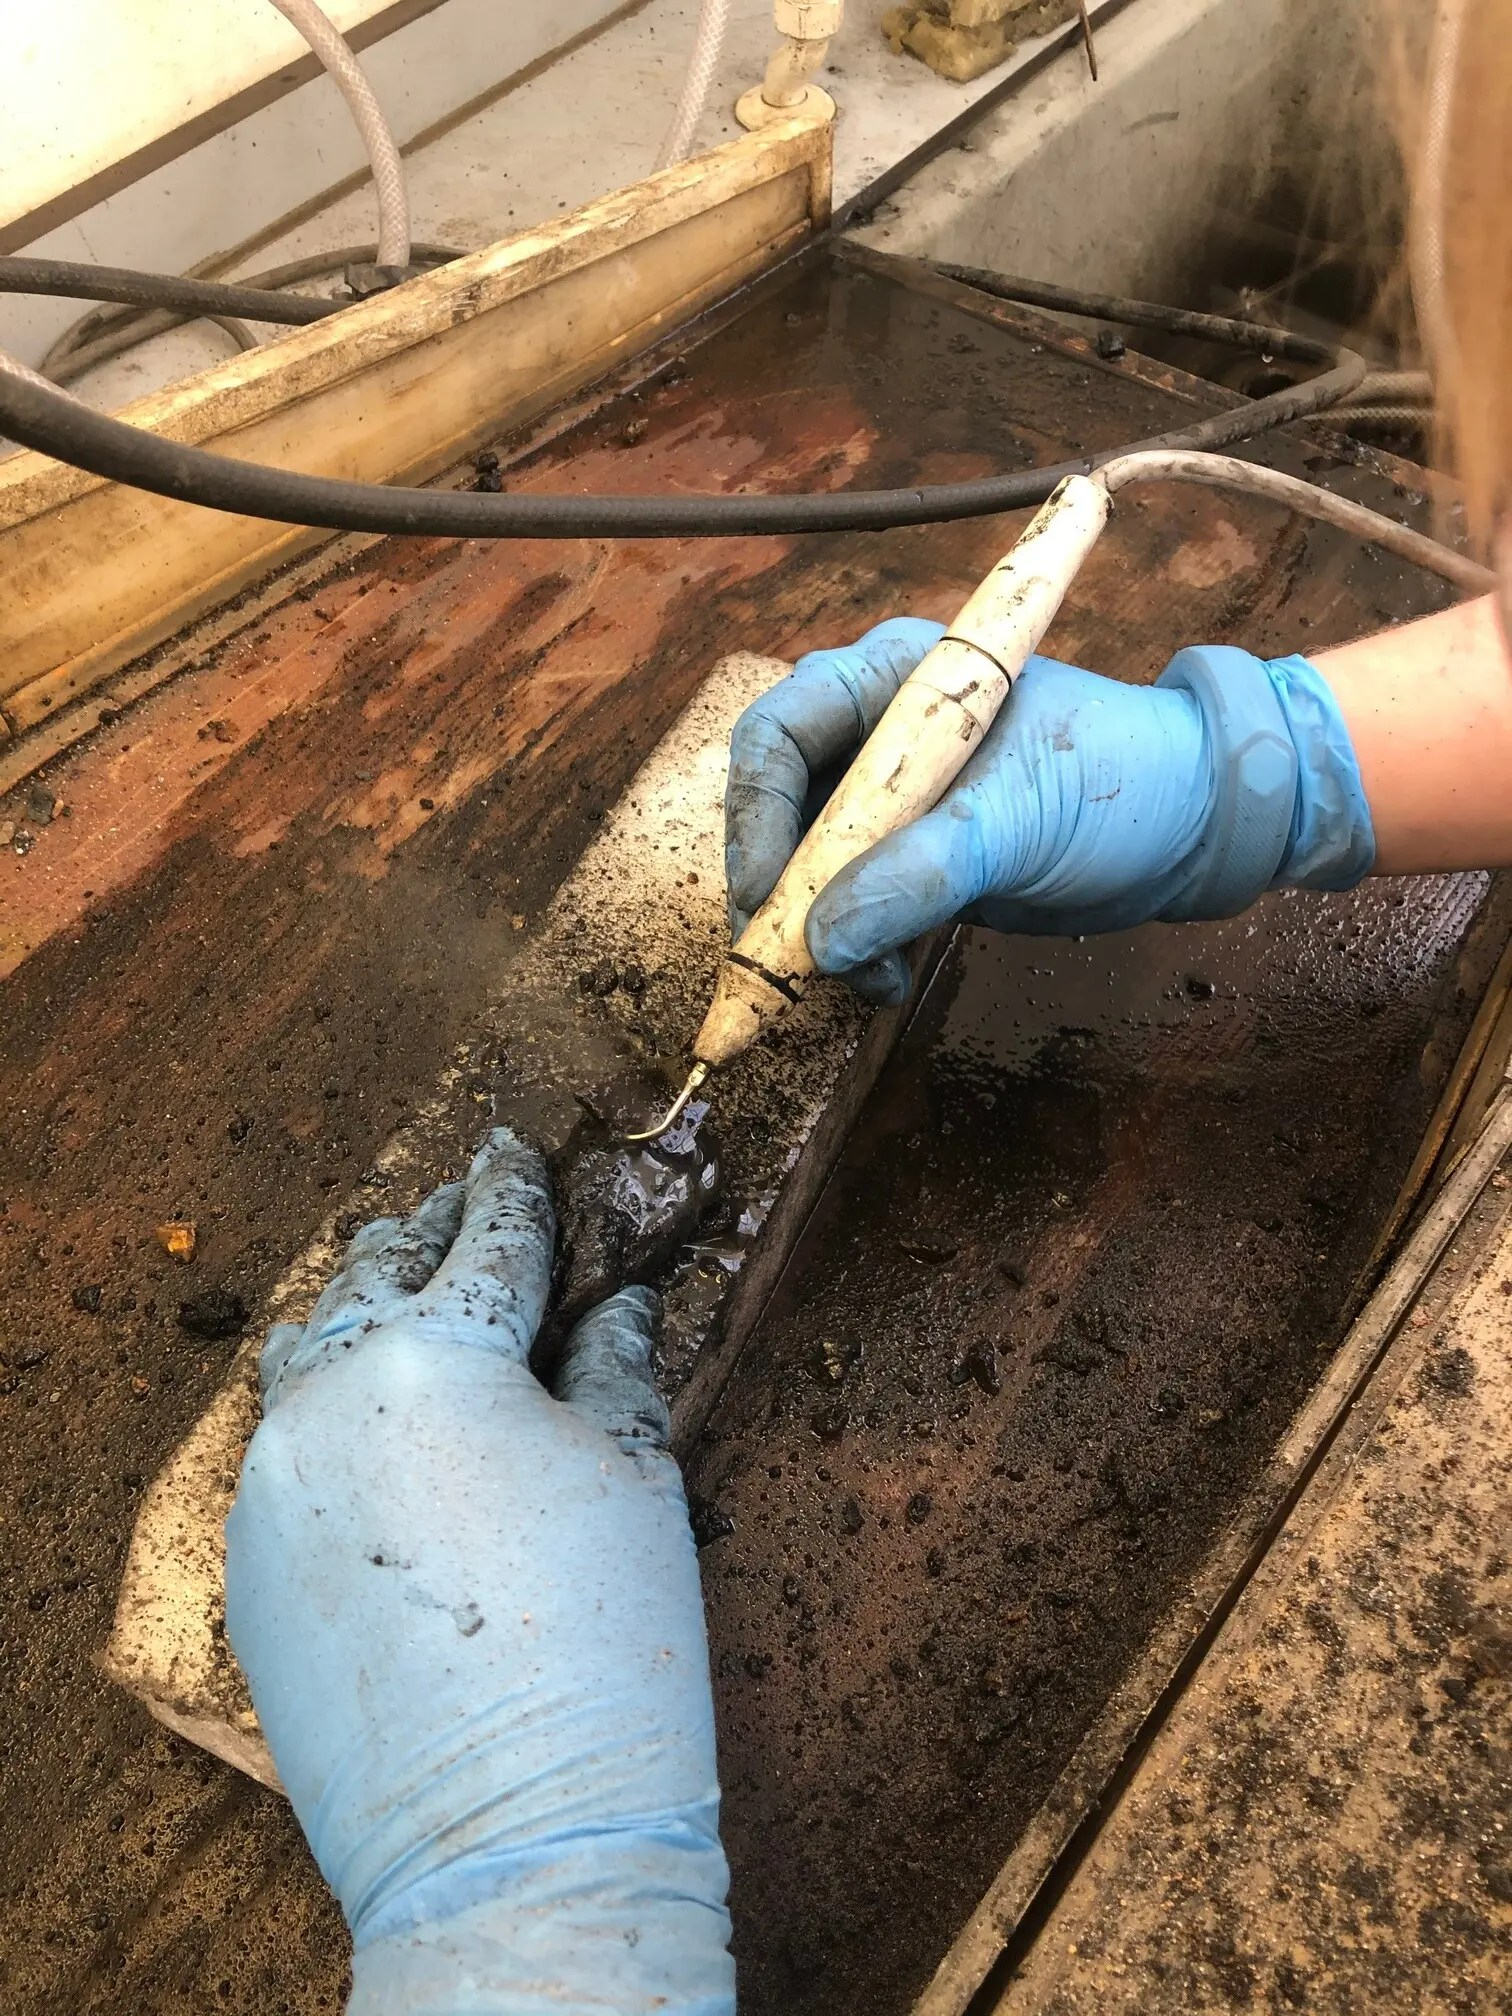 Verity Landrock using an air-scribe to remove concretion from a find from the Rooswijk